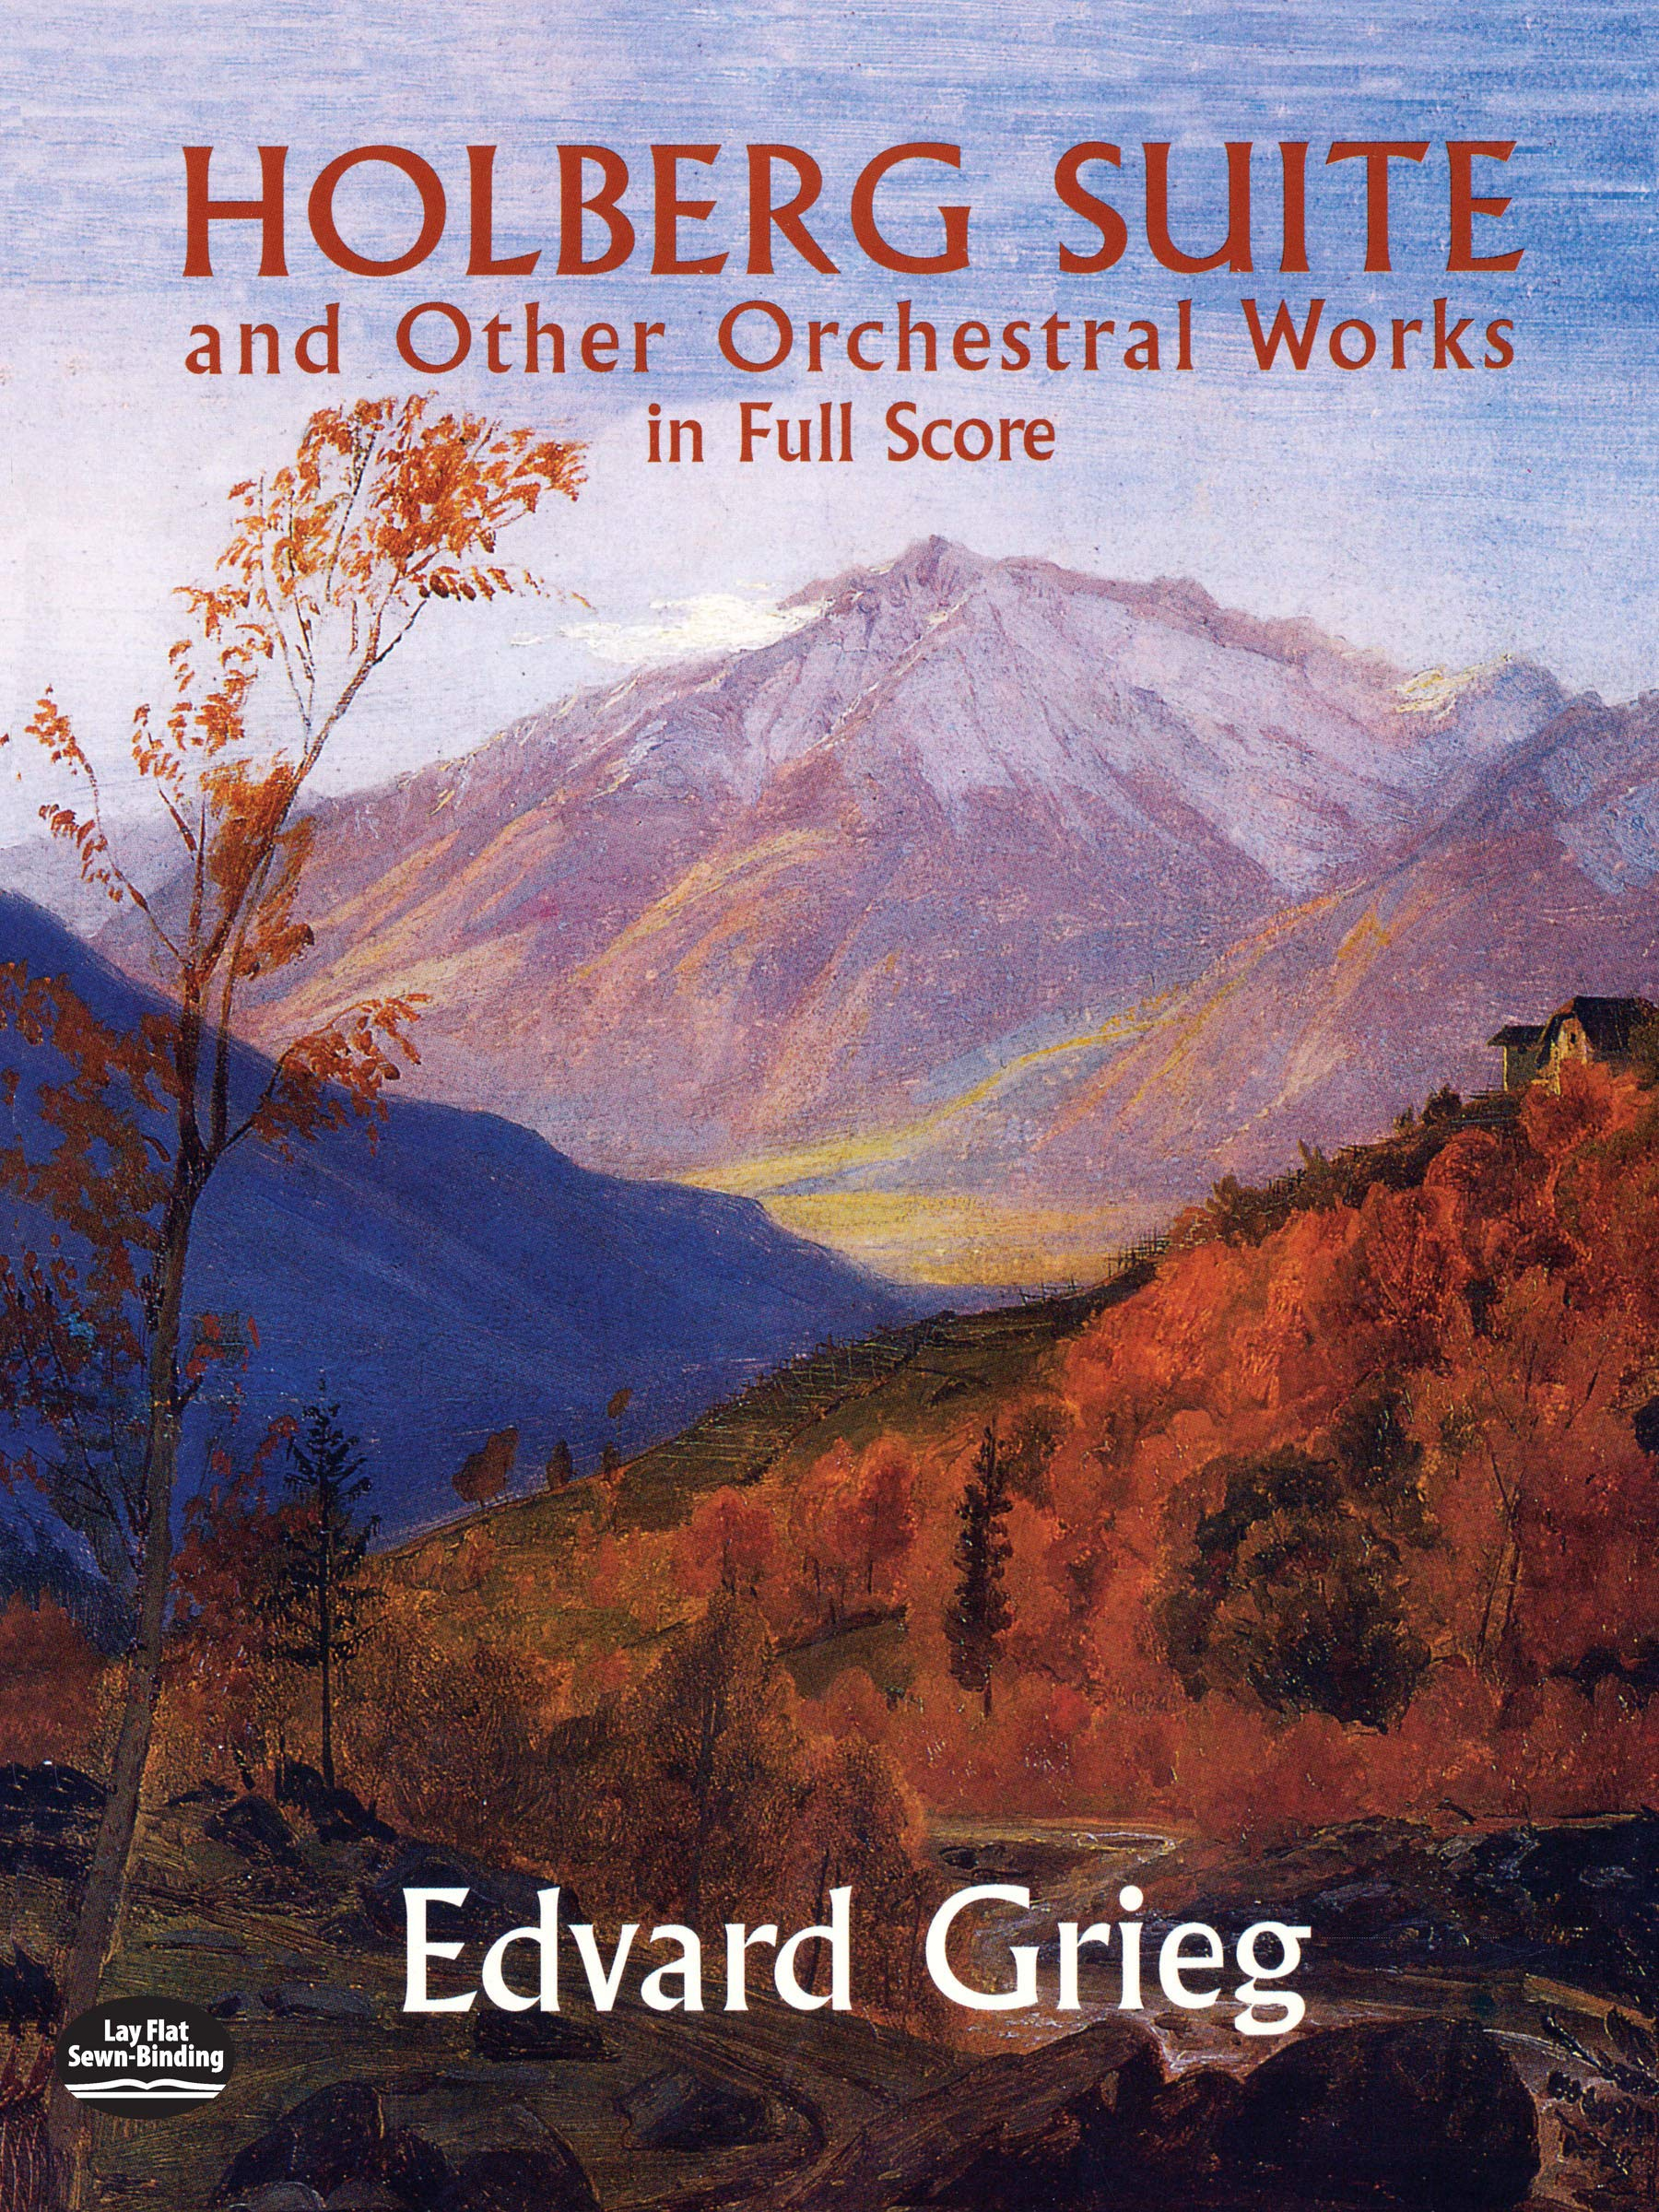 Holberg Suite and Other Orchestral Works in Full Score (Dover Music Scores)  Paperback – July 24, 2013